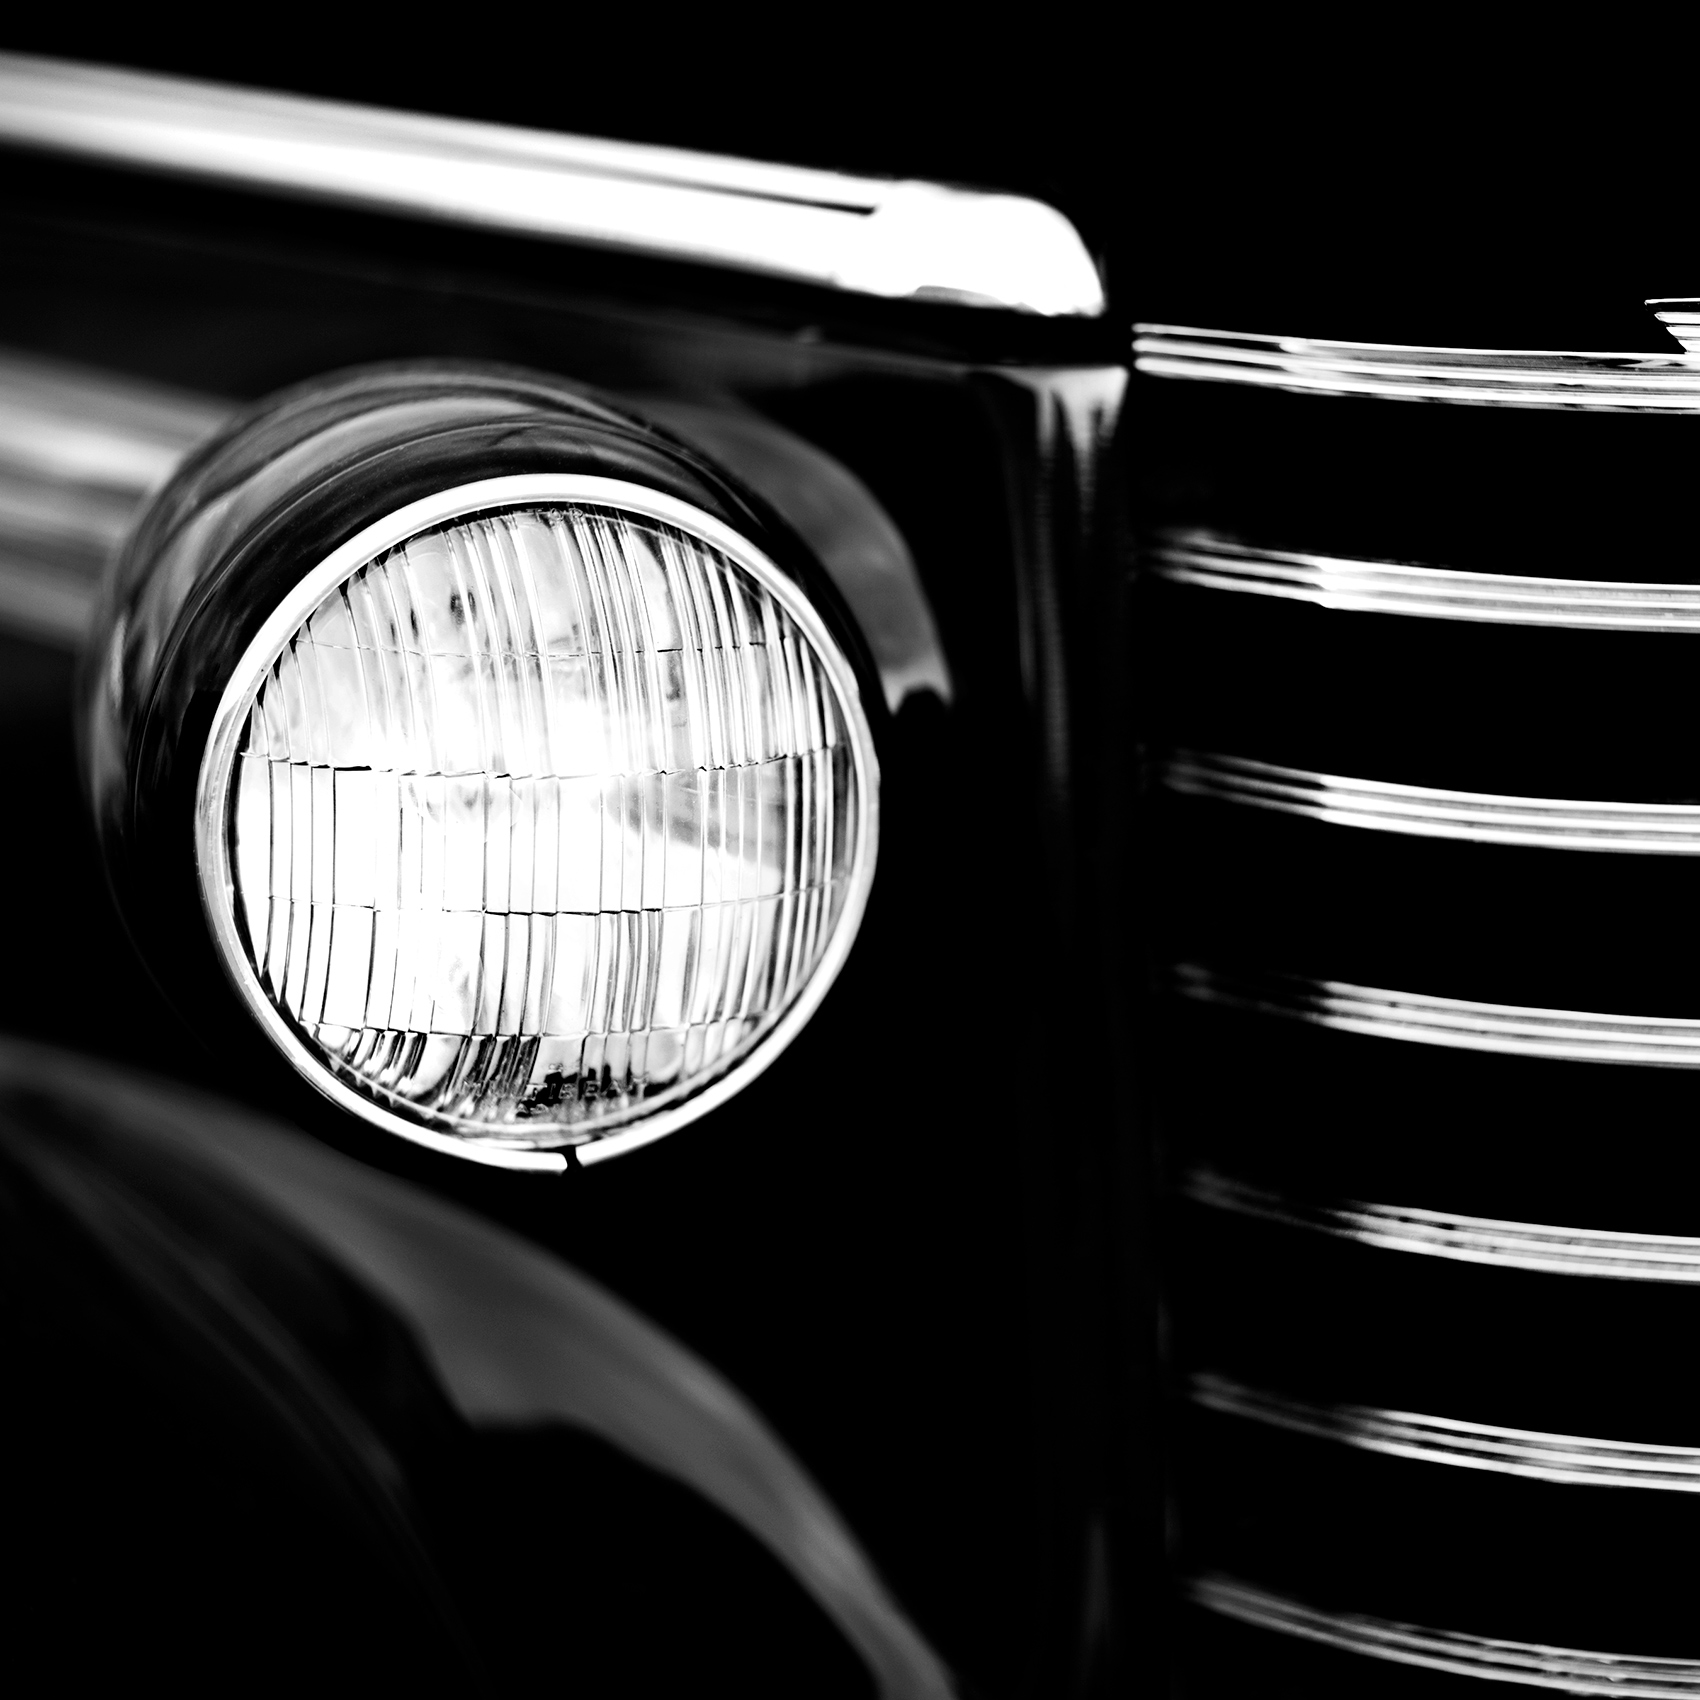 a black and white photo of a head light on a 1946 oldsmobile automobile